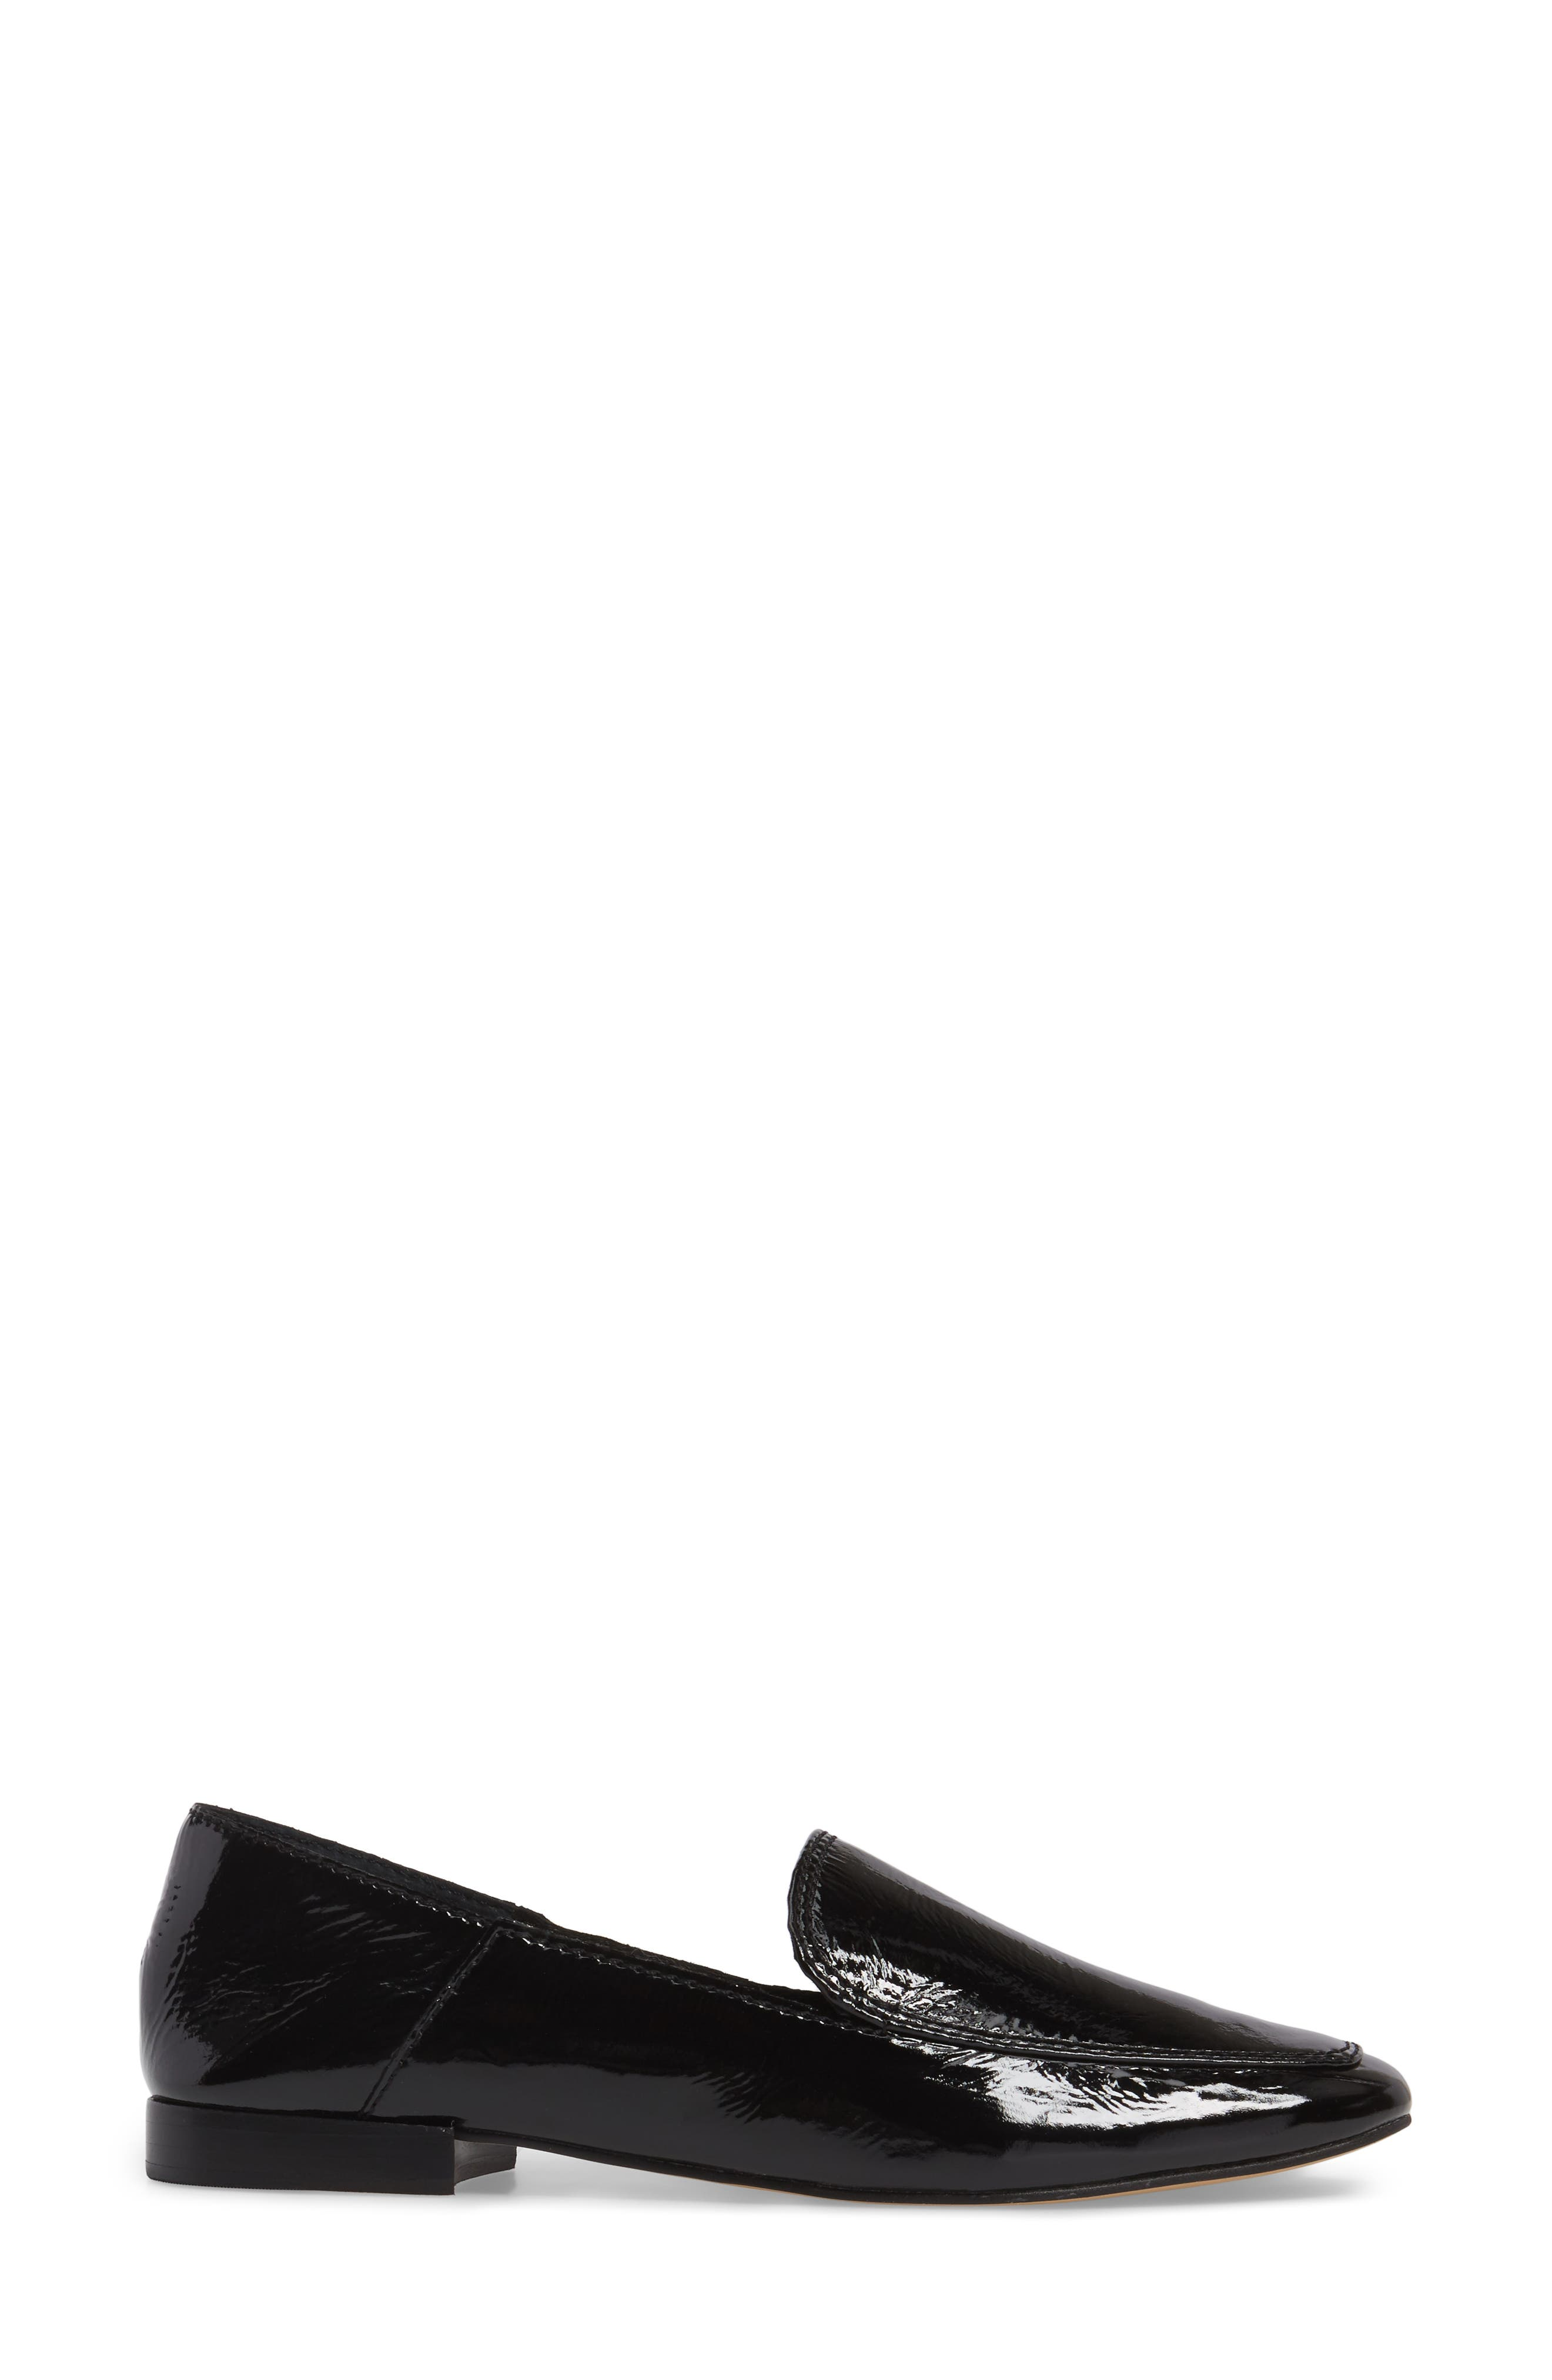 Camden Loafer,                             Alternate thumbnail 3, color,                             Onyx Patent Leather